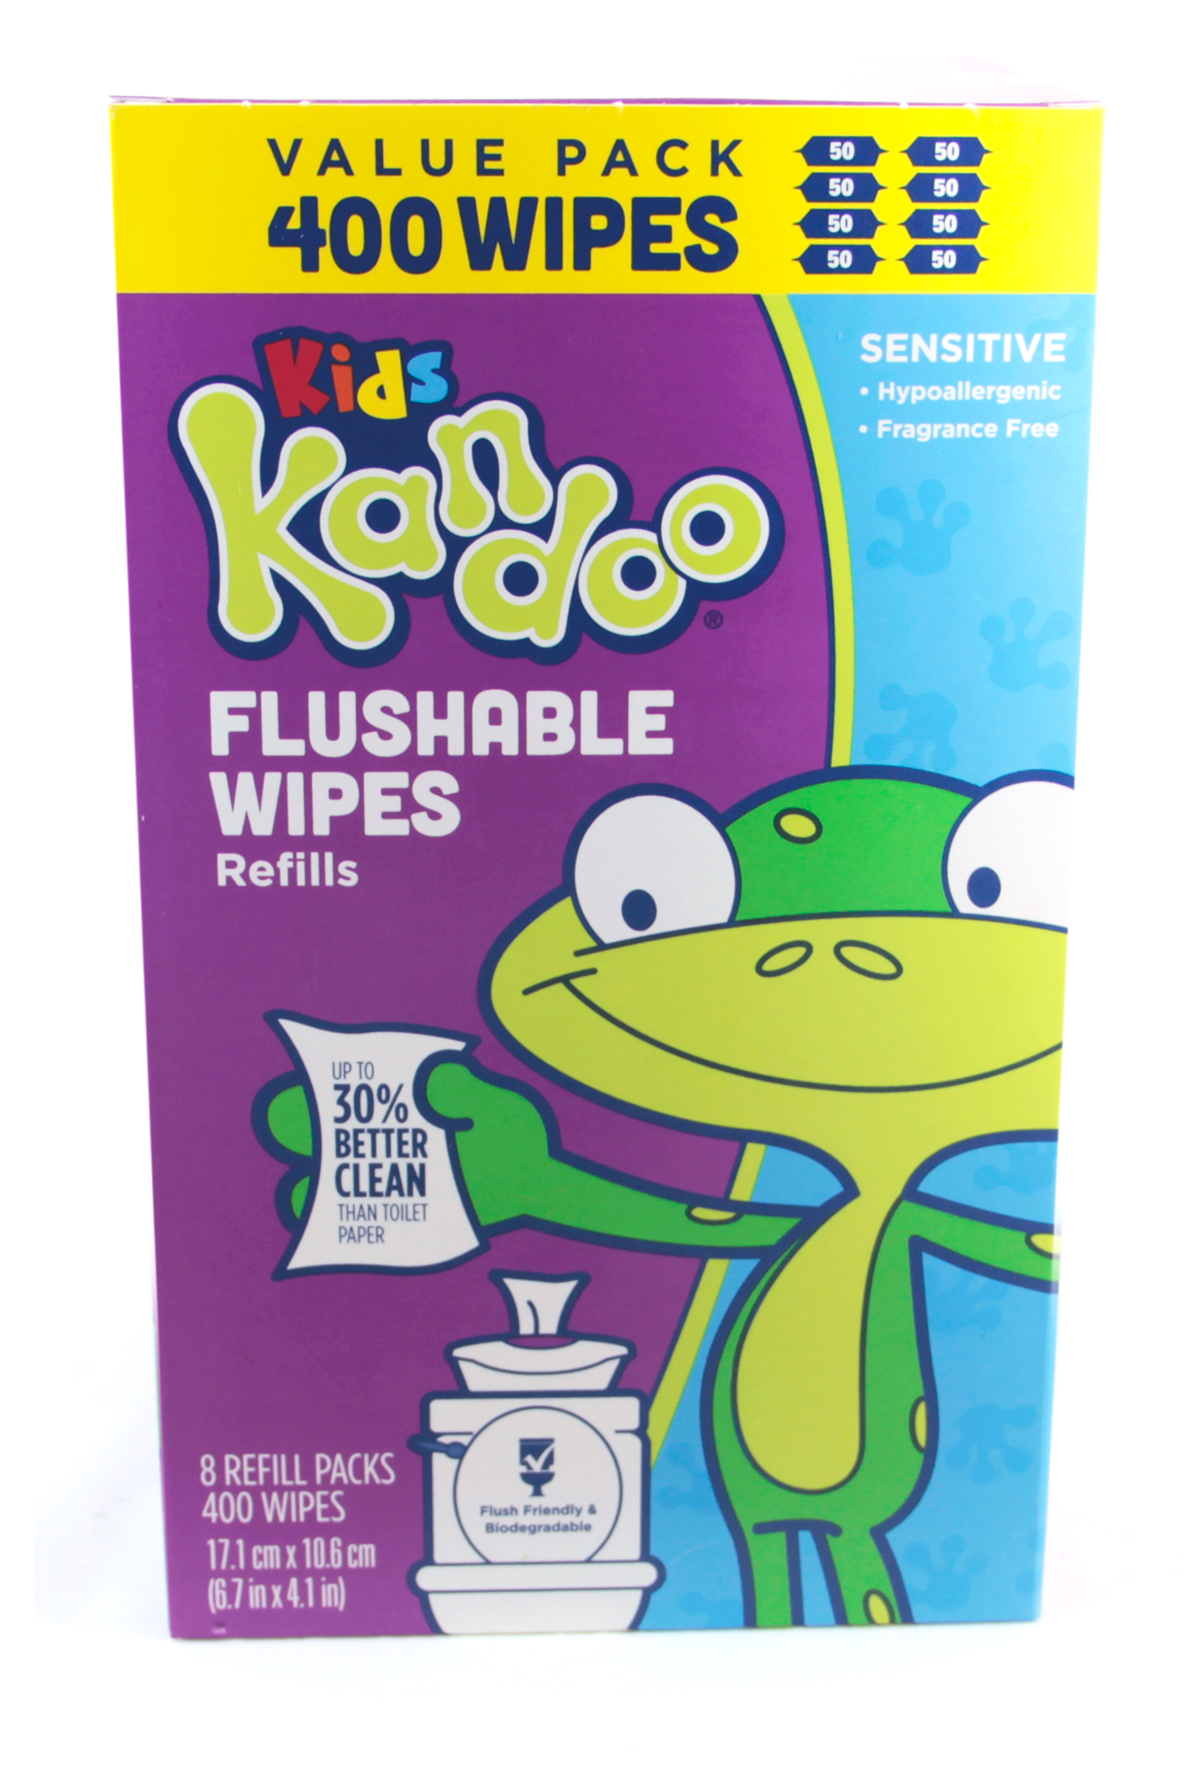 Kandoo flushable wipes sensitive 400 count refills